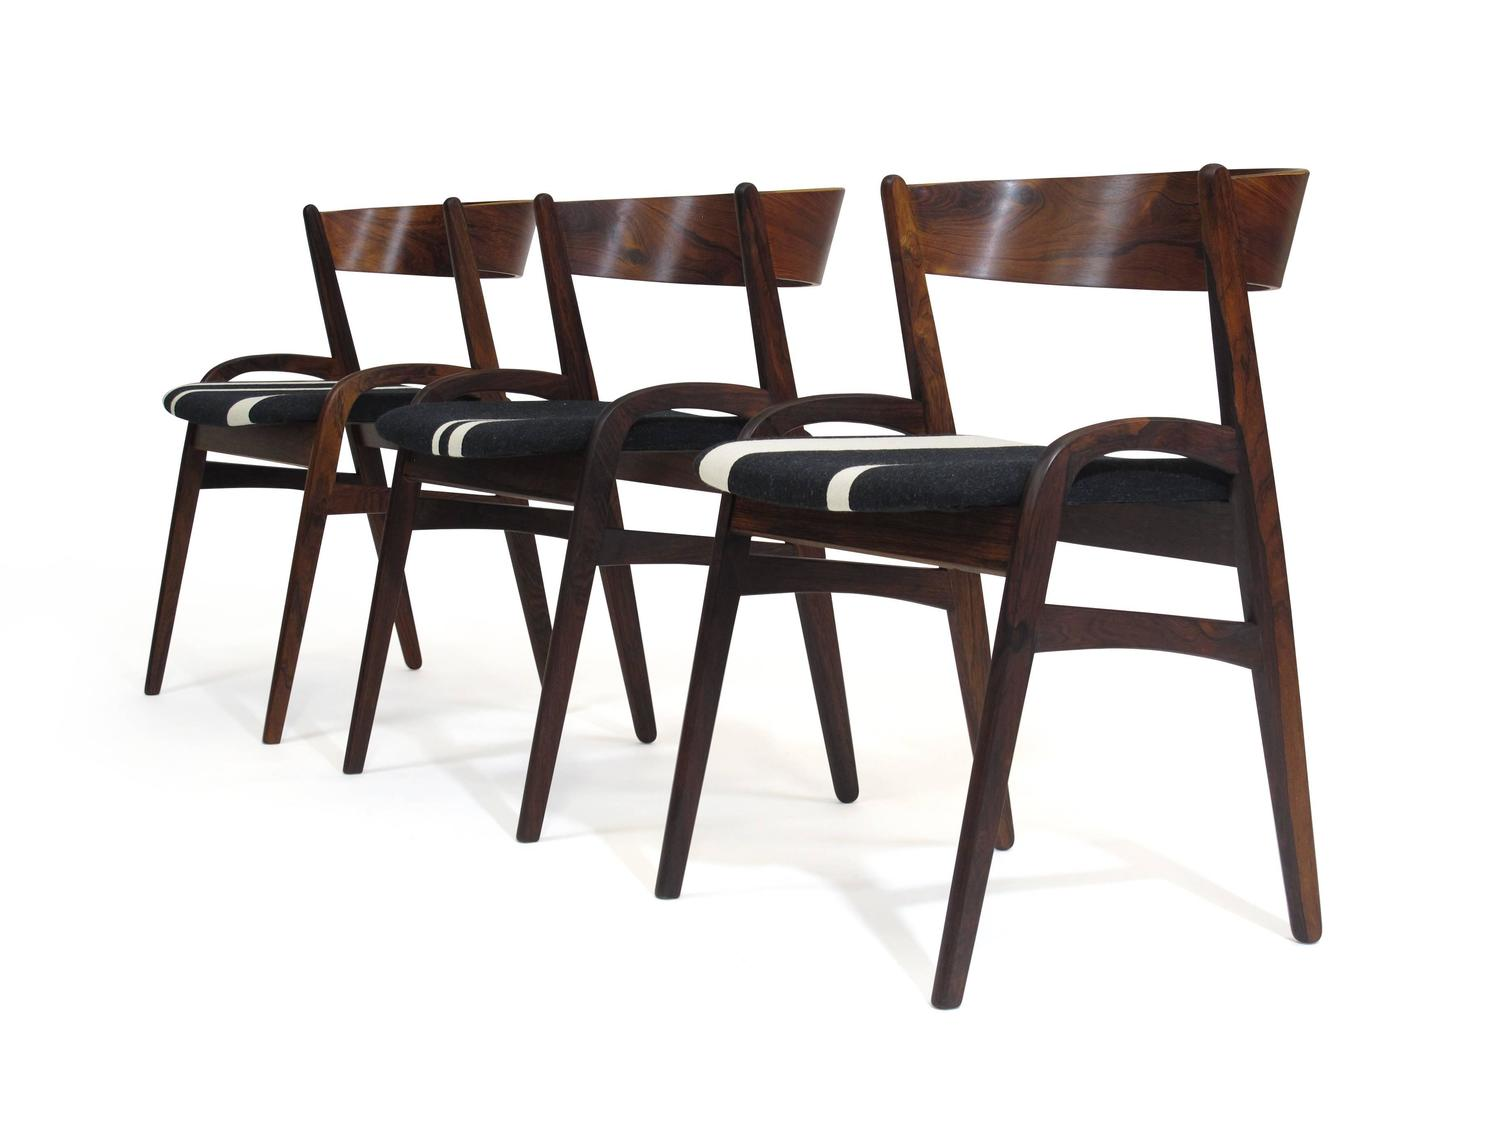 Six Rosewood Danish Dining Chairs in Black White Striped